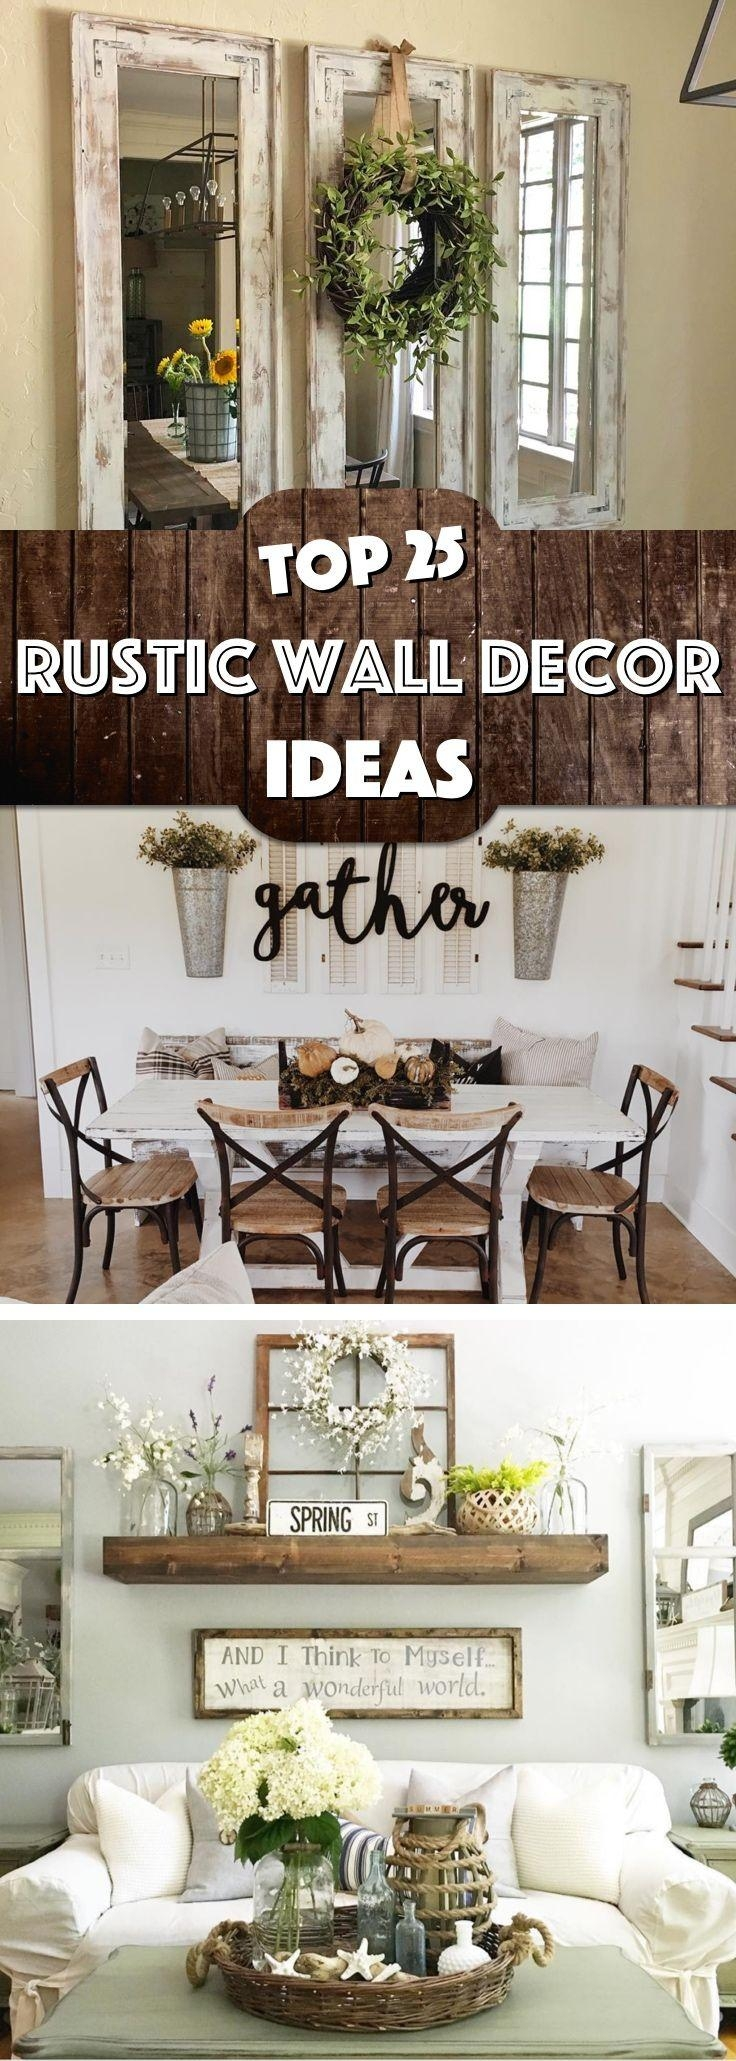 Best 25+ Country Wall Art Ideas Only On Pinterest | Bird Bedroom Within Country Style Wall Art (Image 8 of 20)